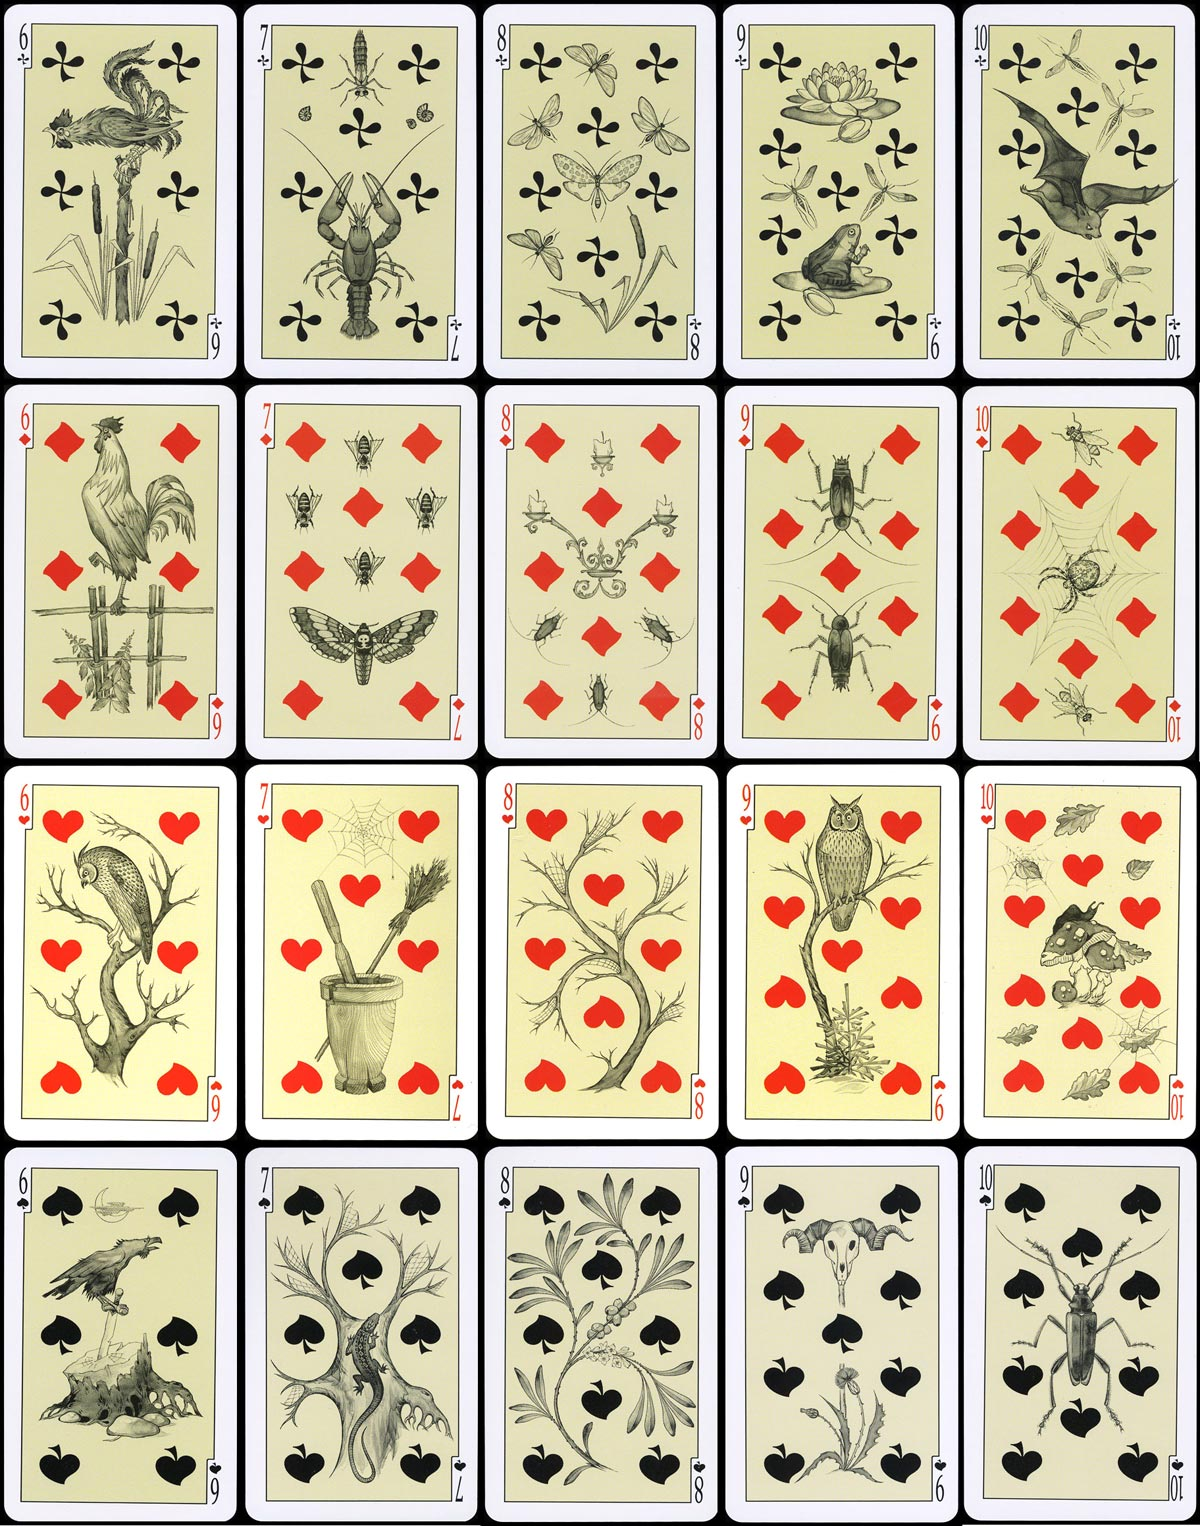 East-Slavonic Mythology playing cards, designed by Aleksey Orleansky, 1st edition numeral cards